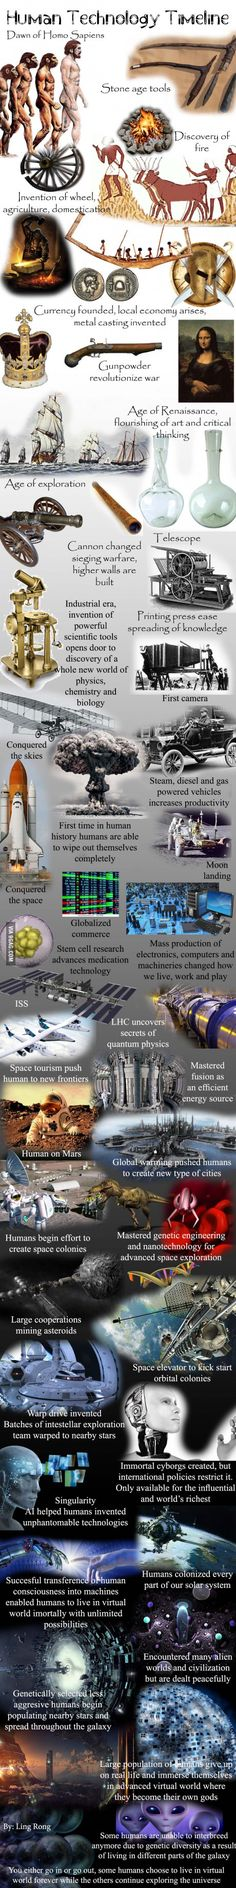 """Human Technology Timeline ---- """"You either Go in or Go out, some Humans choose to Live in a Virtual World forever While the others continue Exploring the Universe."""" (By: Ling Long) Nasa History, History Museum, Ancient History, World History Lessons, History Projects, Technology Timeline, Art History Timeline, Black History Month Activities, Historia Universal"""